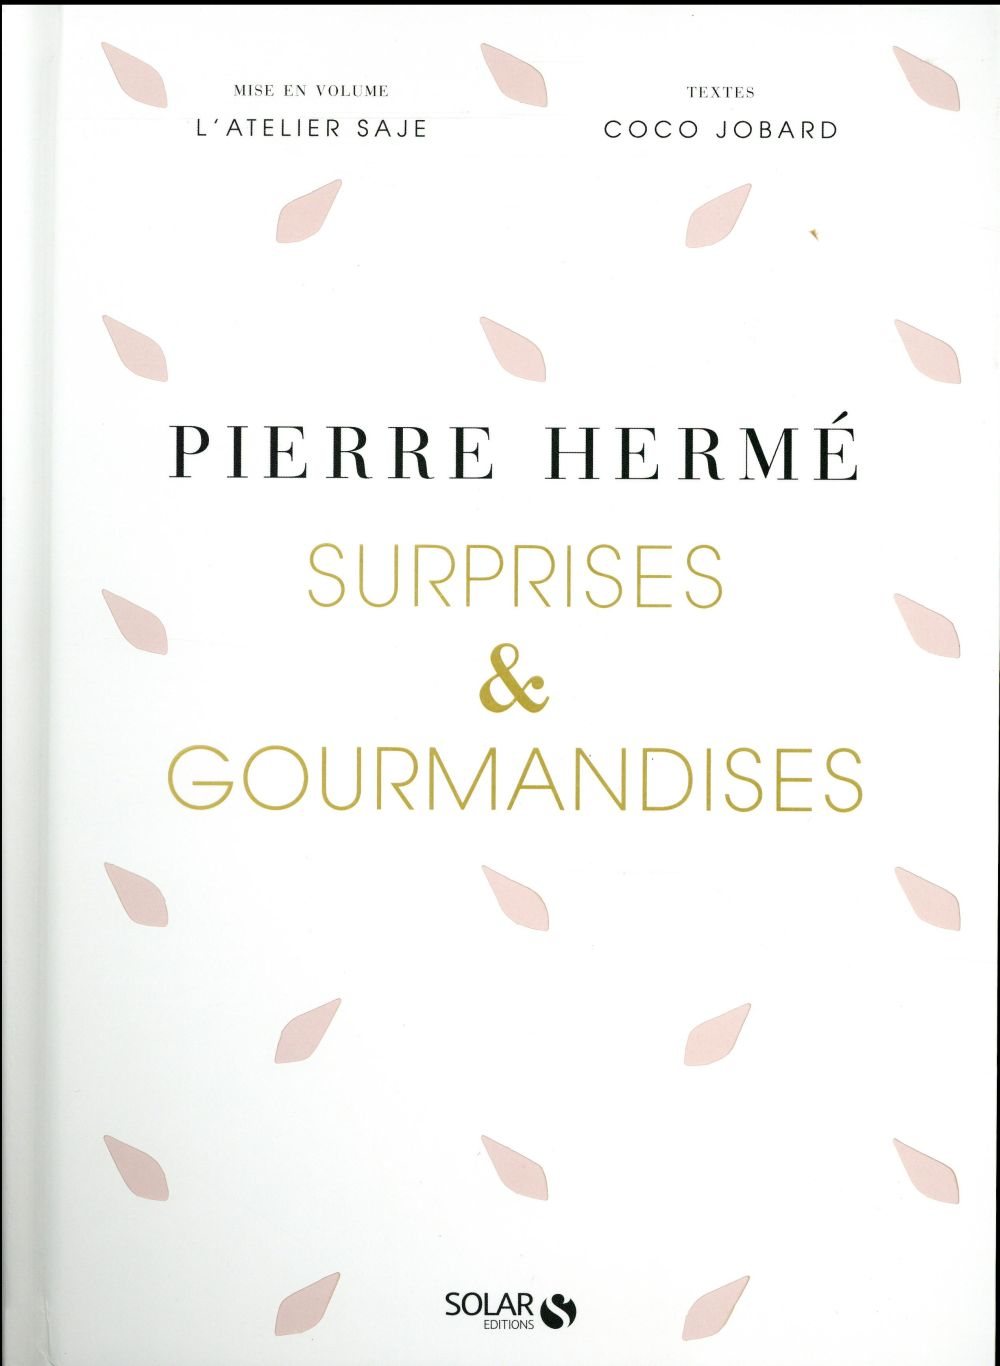 Surprises & gourmandises